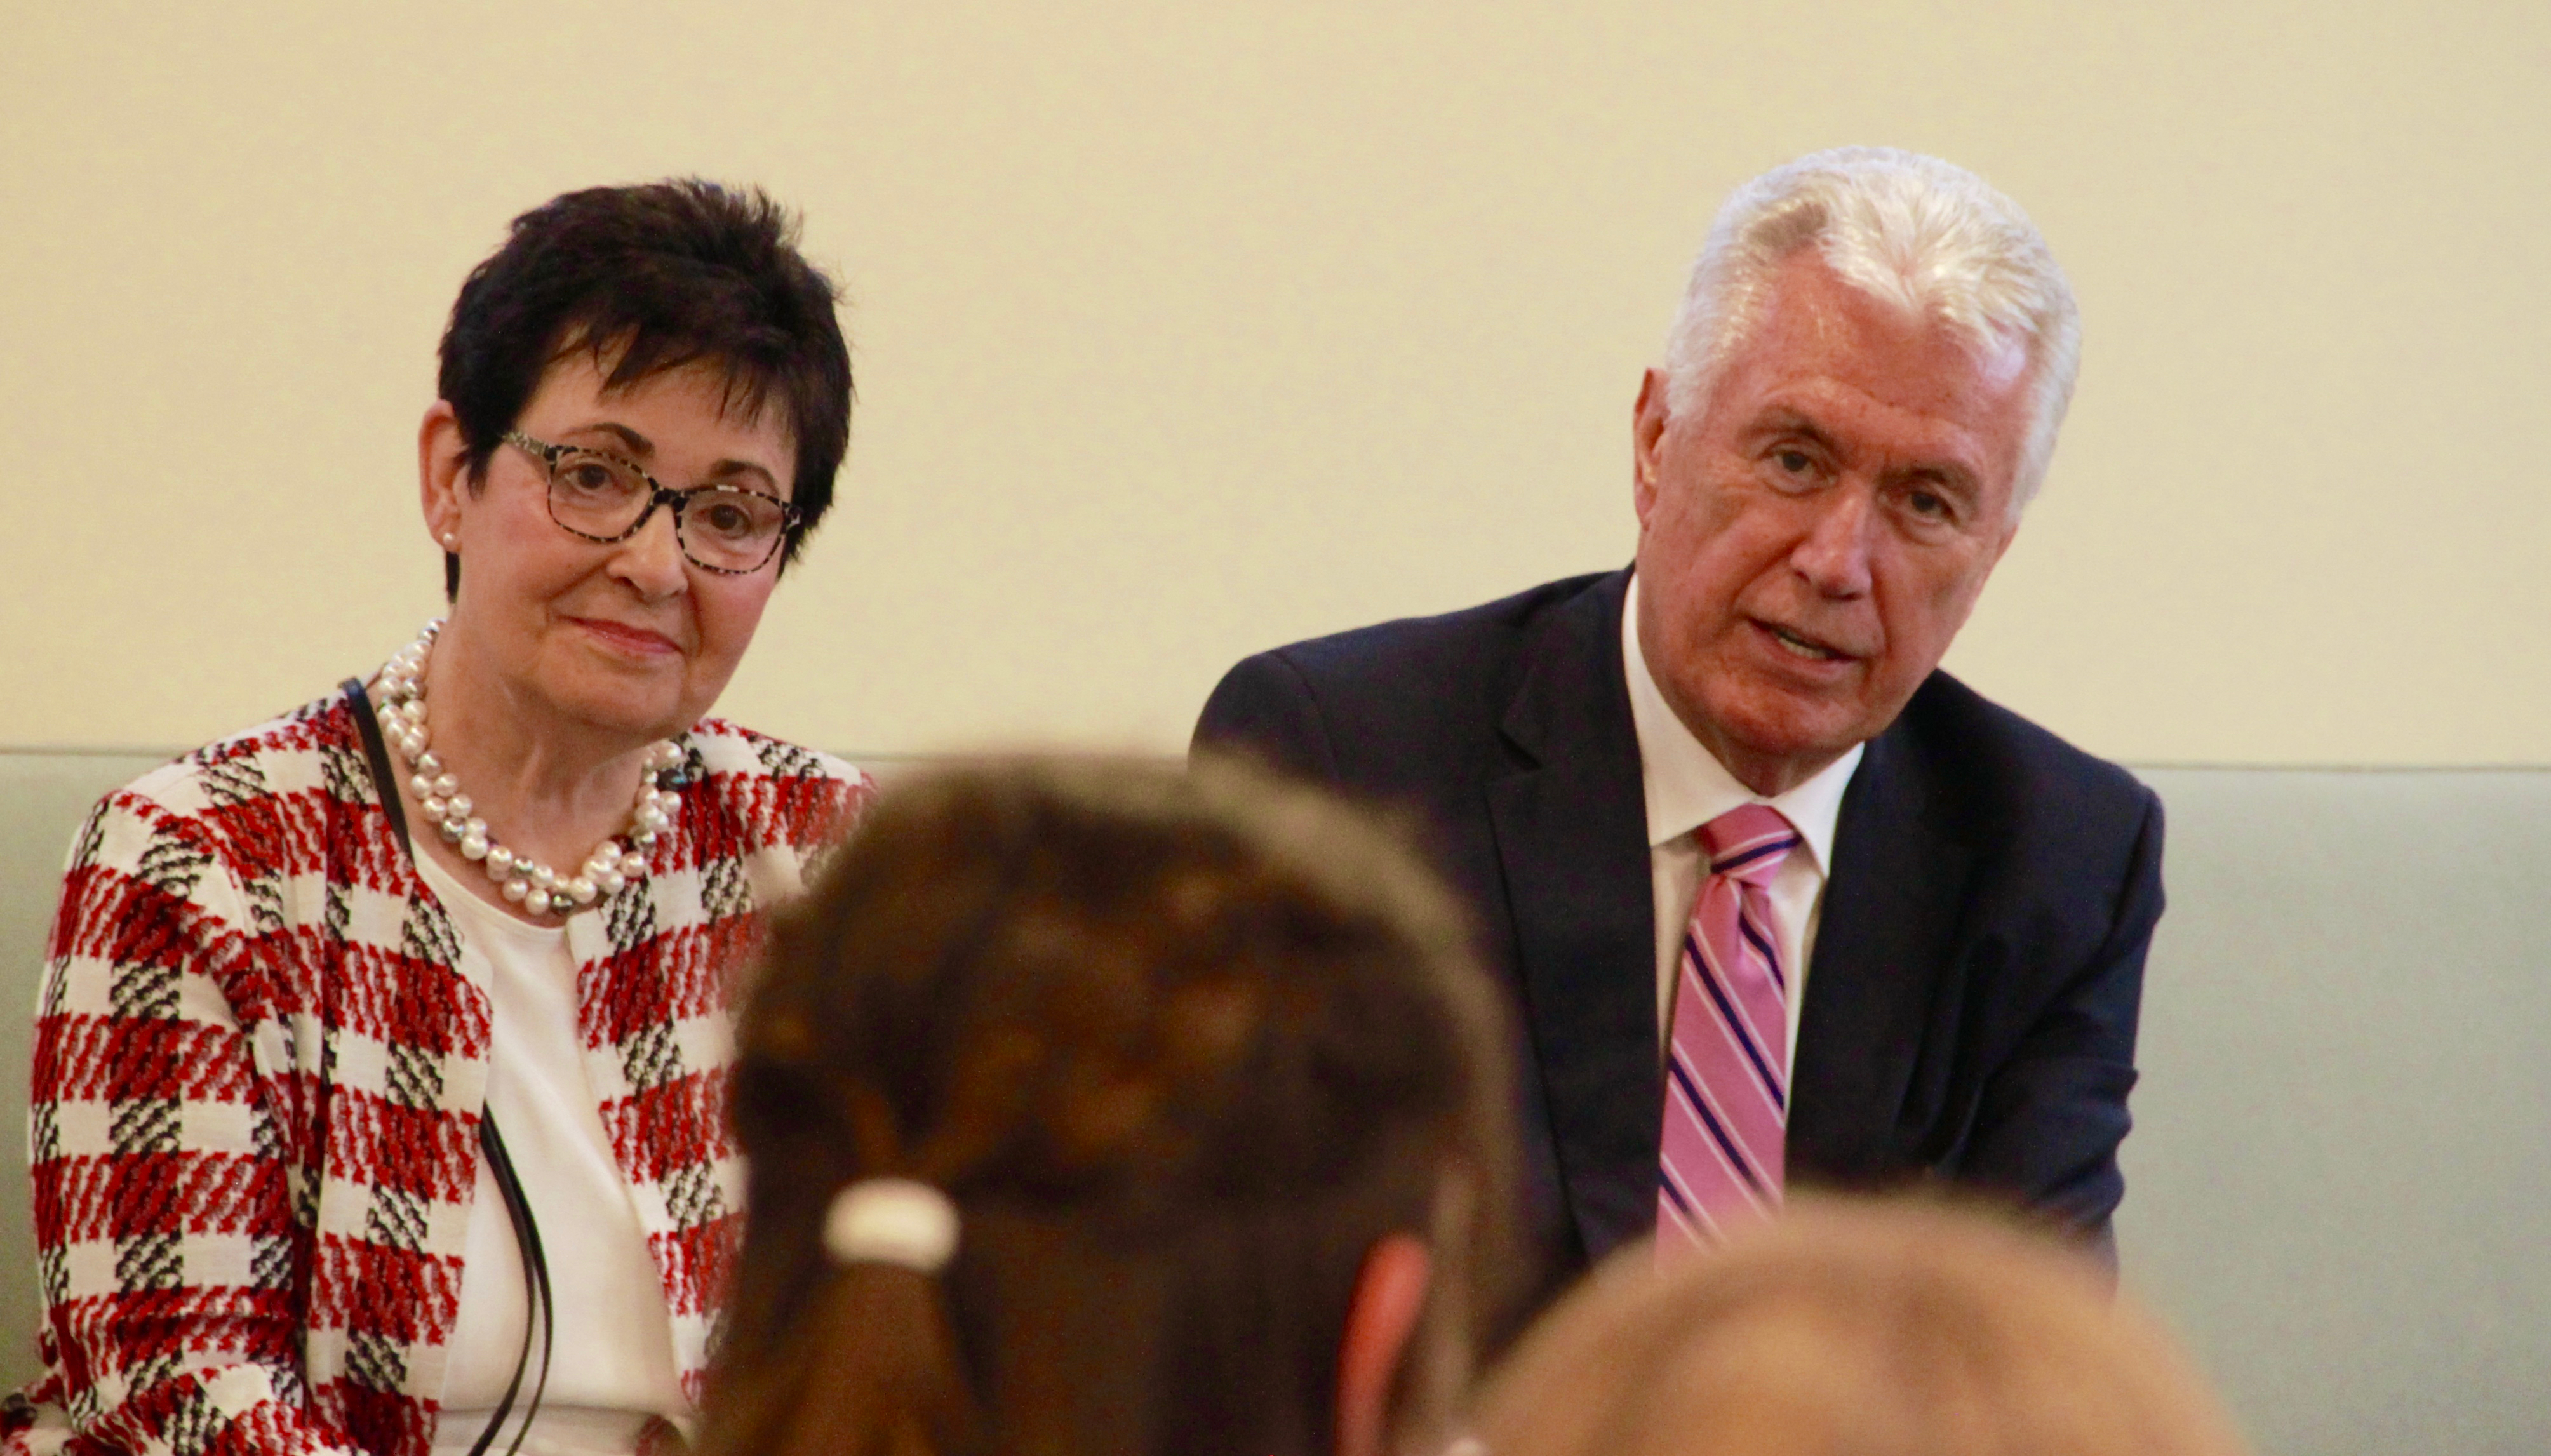 Elder Dieter F. Uchtdorf and Sister Harriet Uchtdorf engage a group of youth in a meeting prior to a devotional Saturday, Oct. 19, 2019, in Friedrichsdorf, Germany.